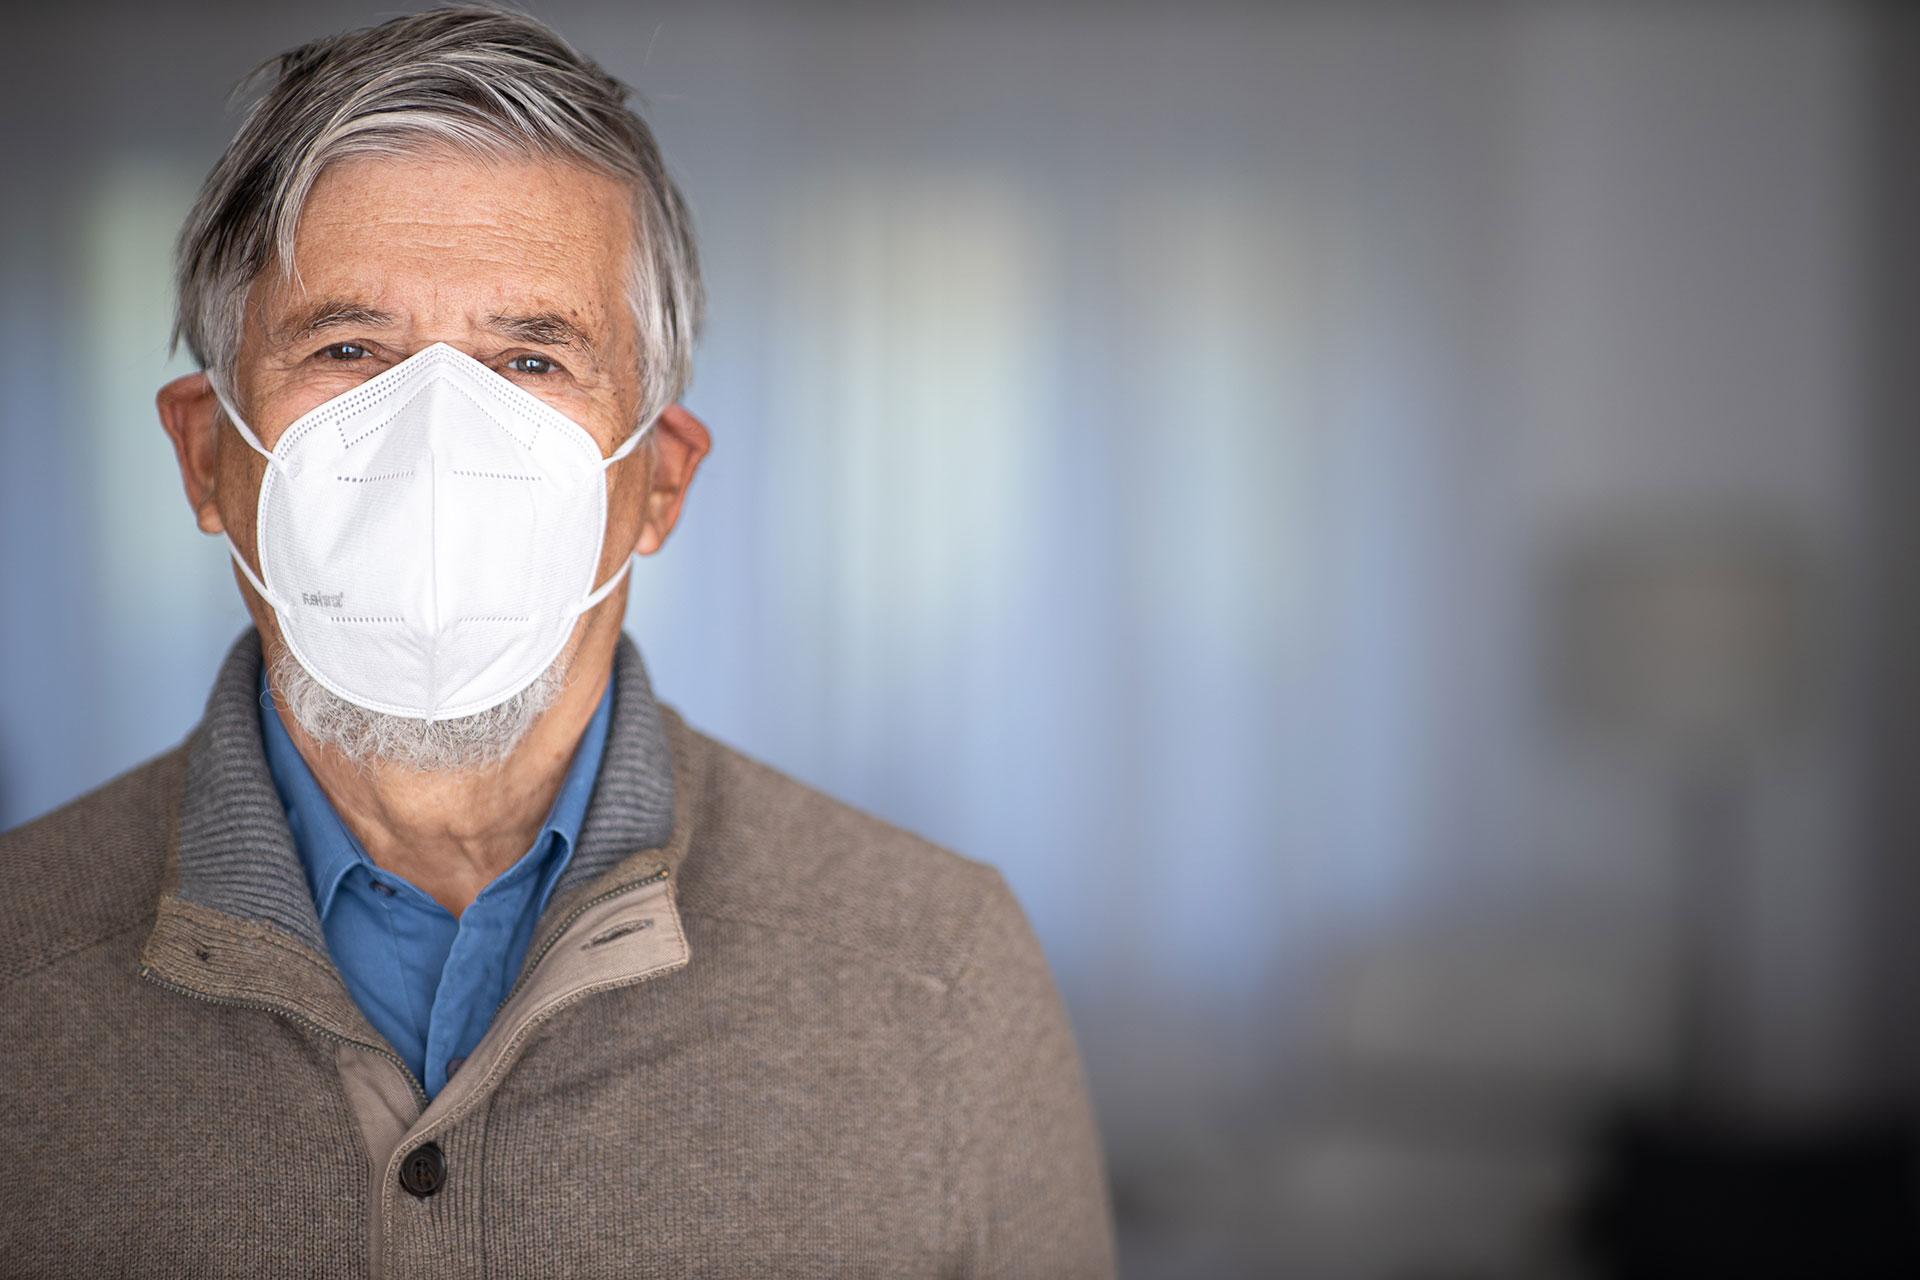 Senior Wearing Medical Facemask | Protect Seniors with CareSafely